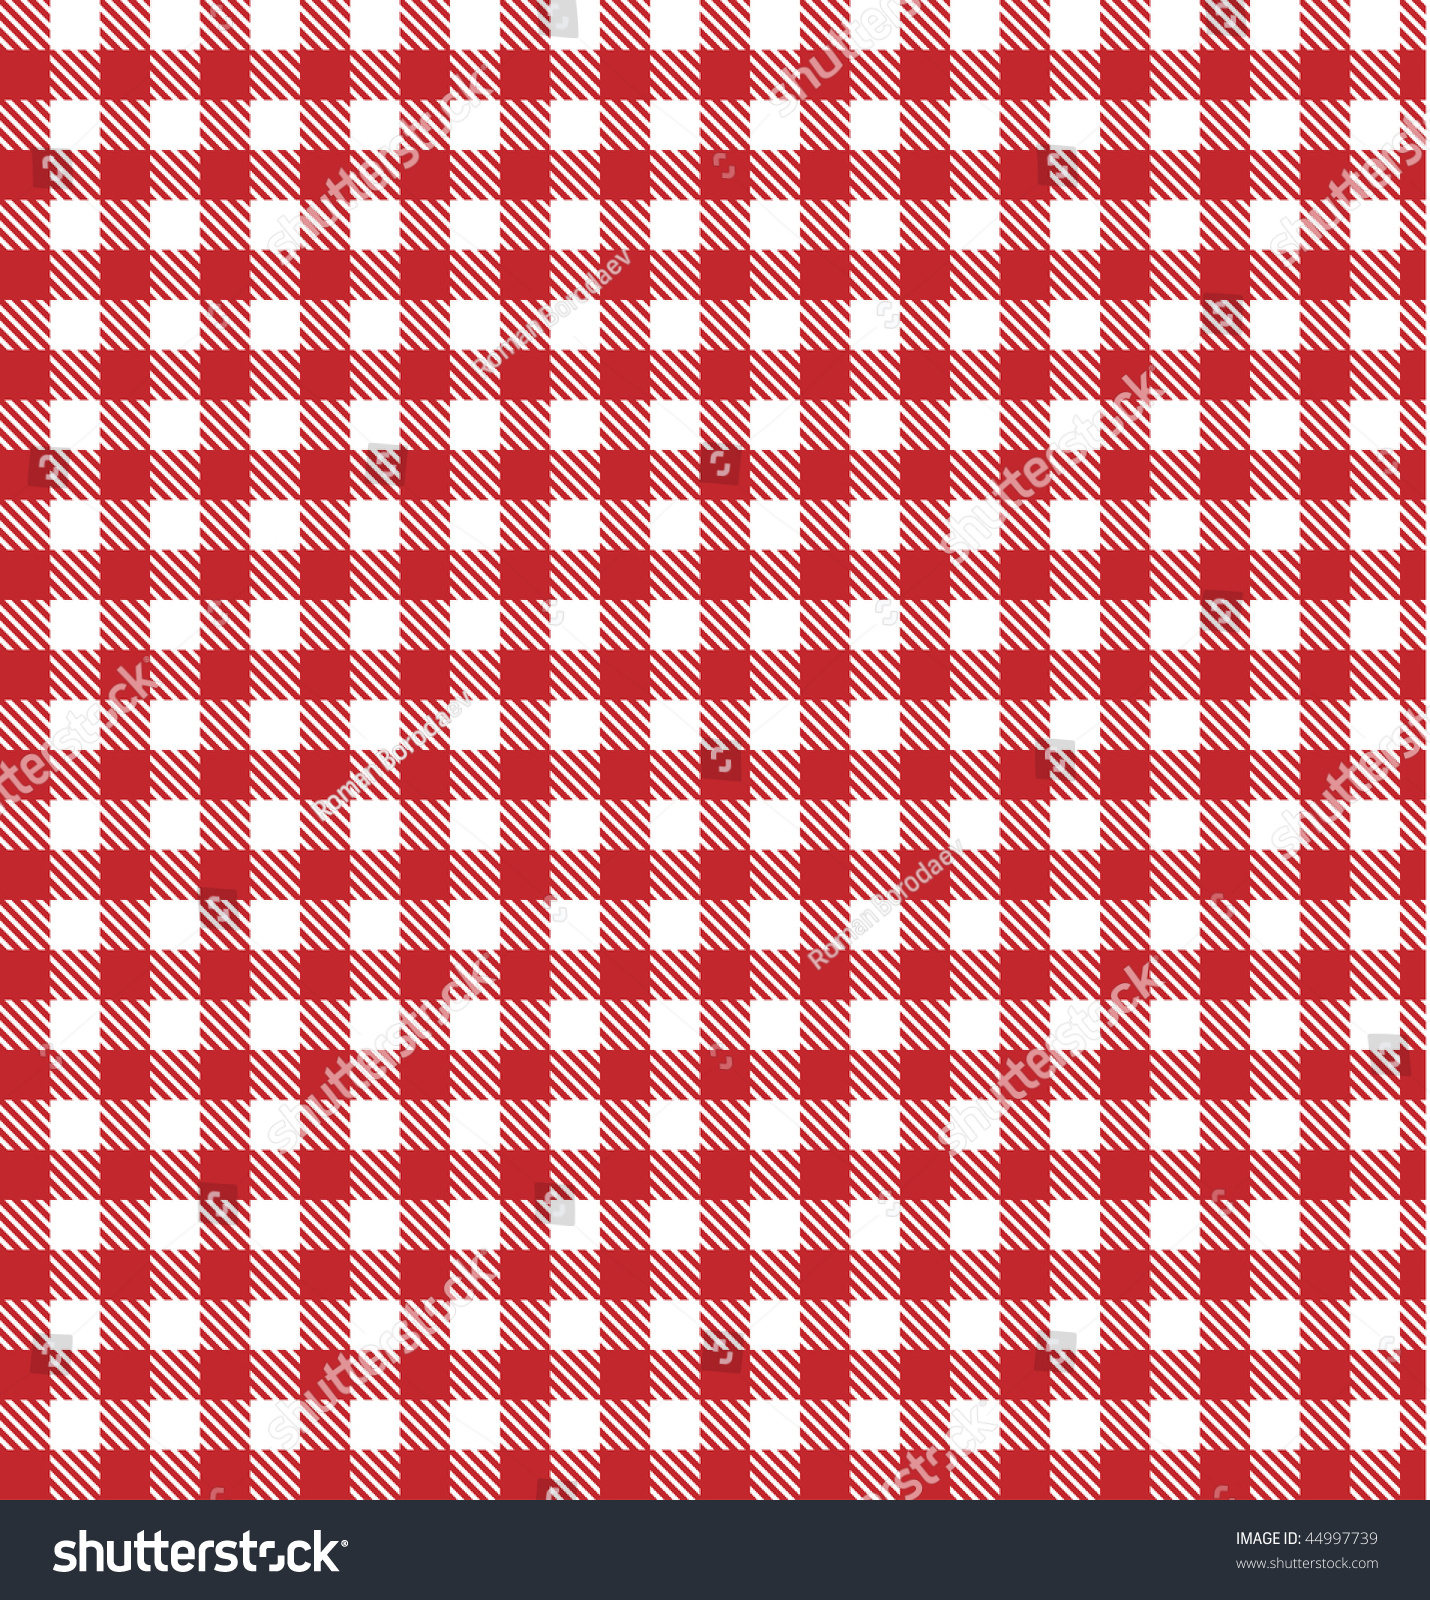 Red checkered background clipart clipground - Red